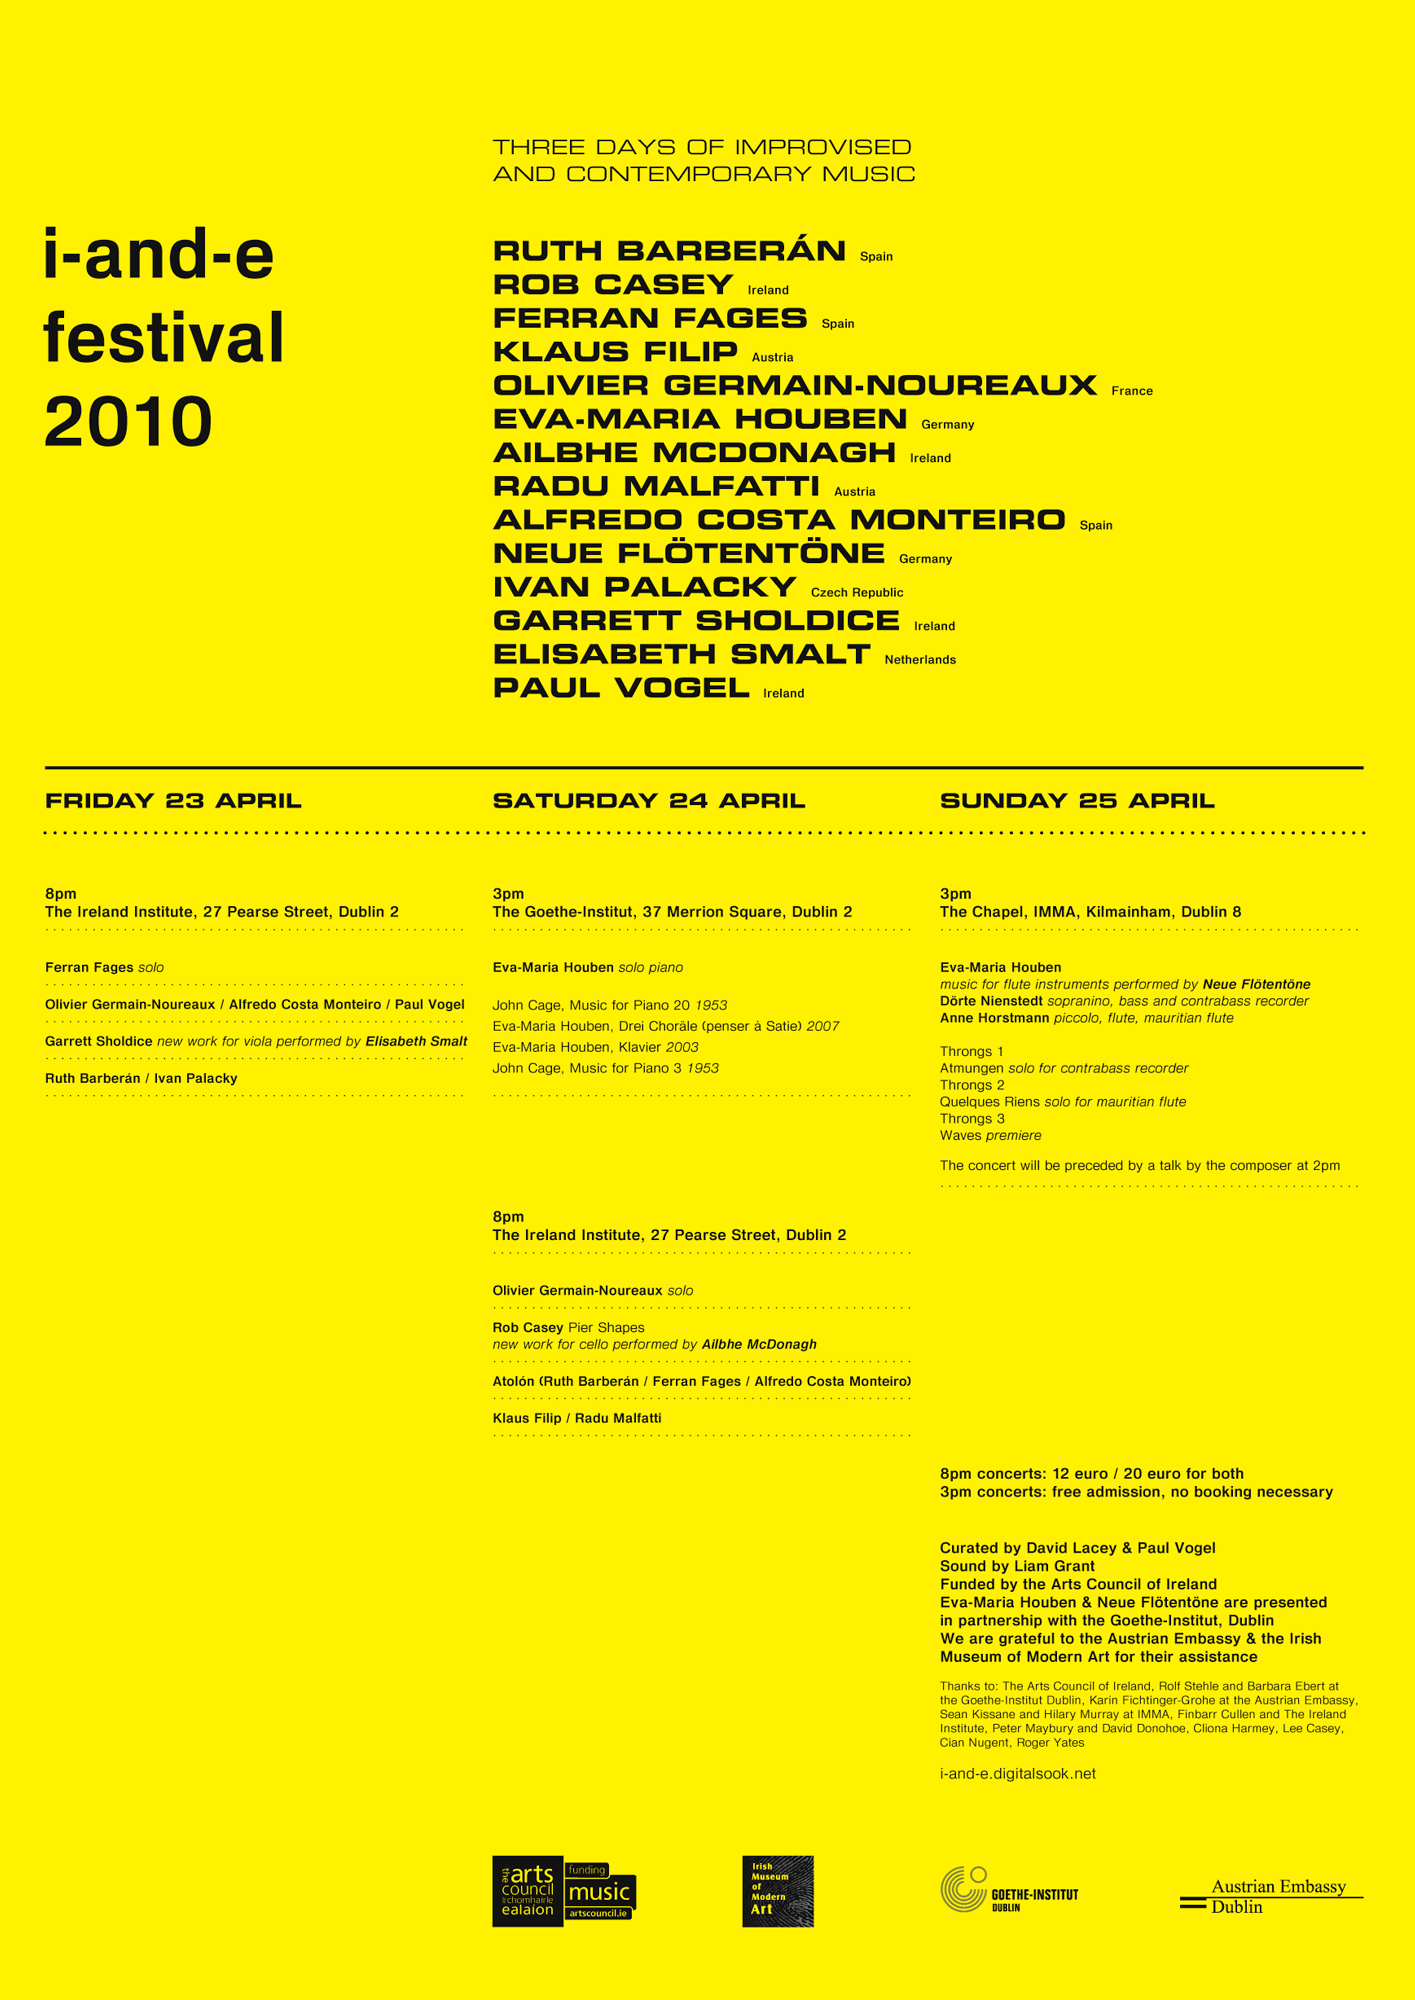 Cover image: i-and-e festival 2010